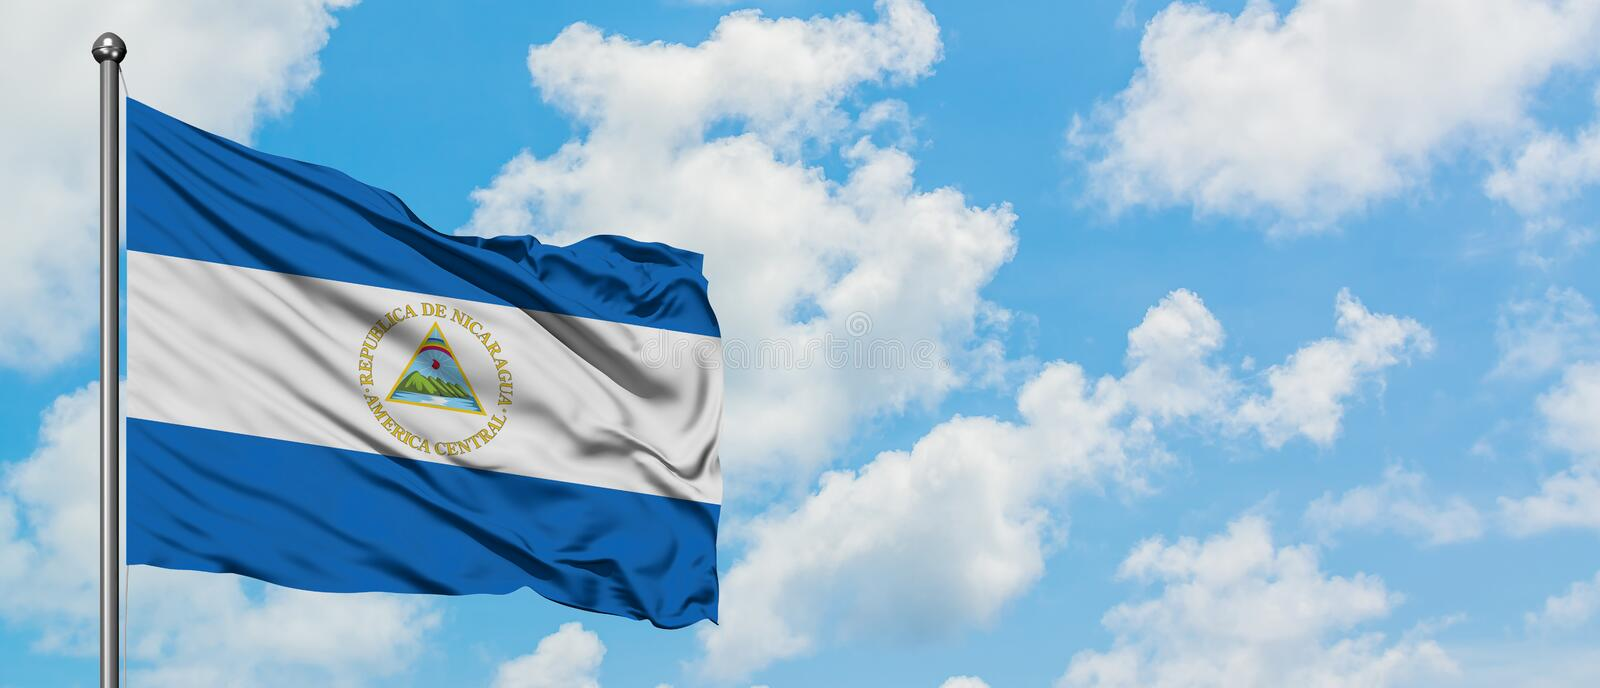 Nicaragua flag waving in the wind against white cloudy blue sky. Diplomacy concept, international relations.  royalty free stock photo